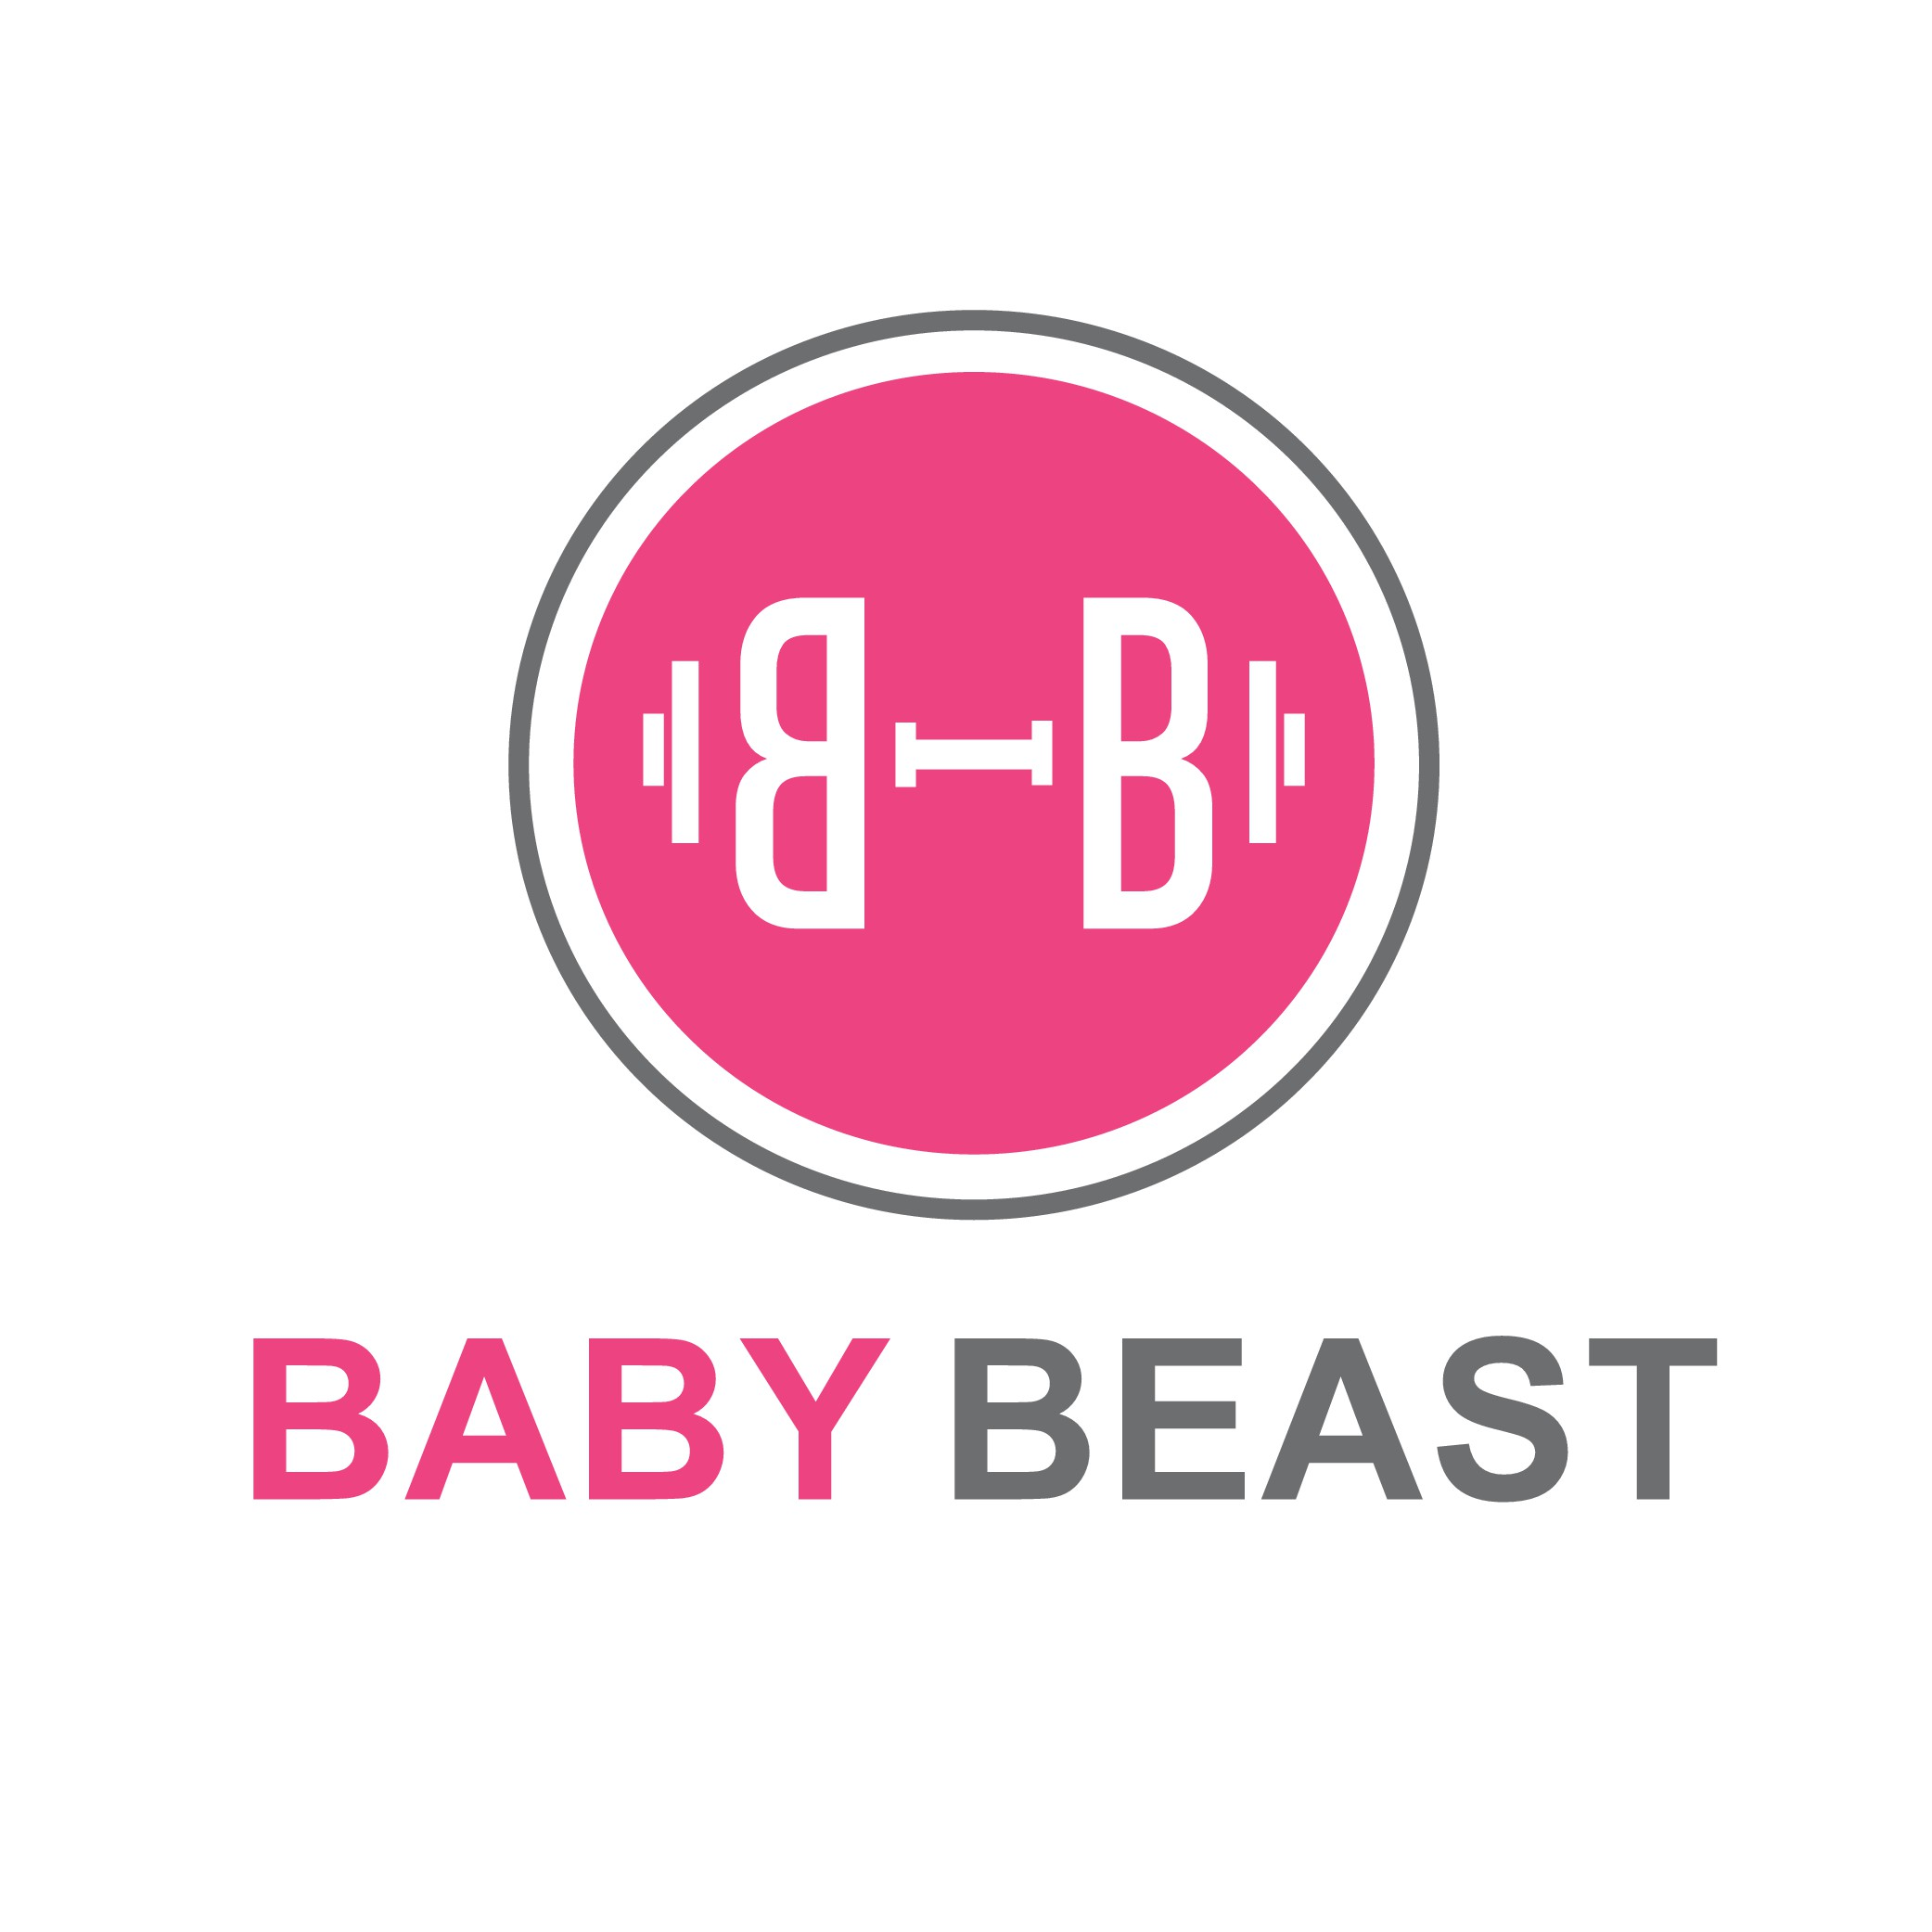 Create a FITNESS logo for Baby Beast - an inspirational little girl with Apraxia